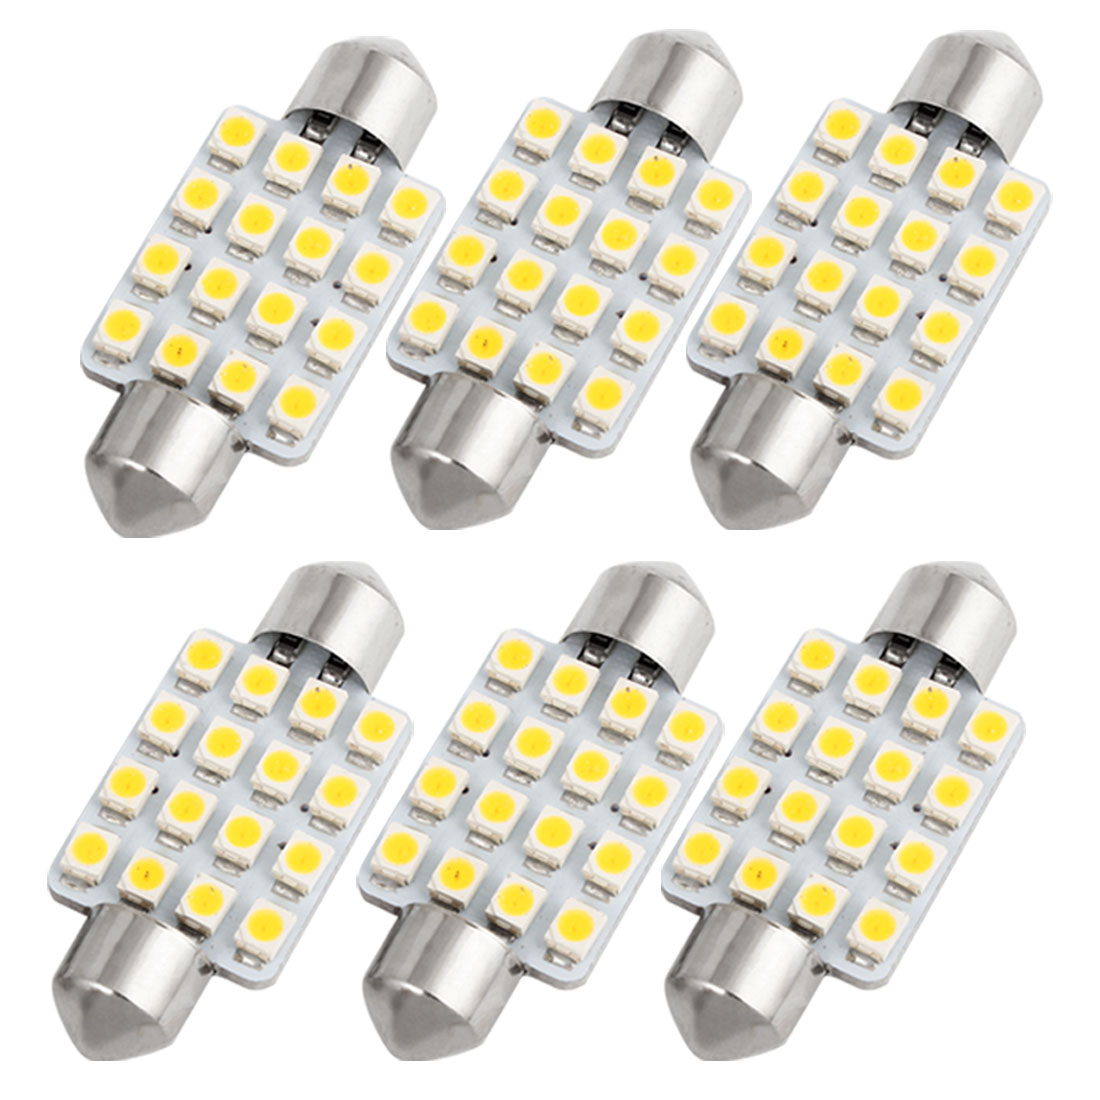 6pcs 39mm 3528 SMD 16LED Warm White Festoon Dome Light Bulb DE3423 C5W Internal